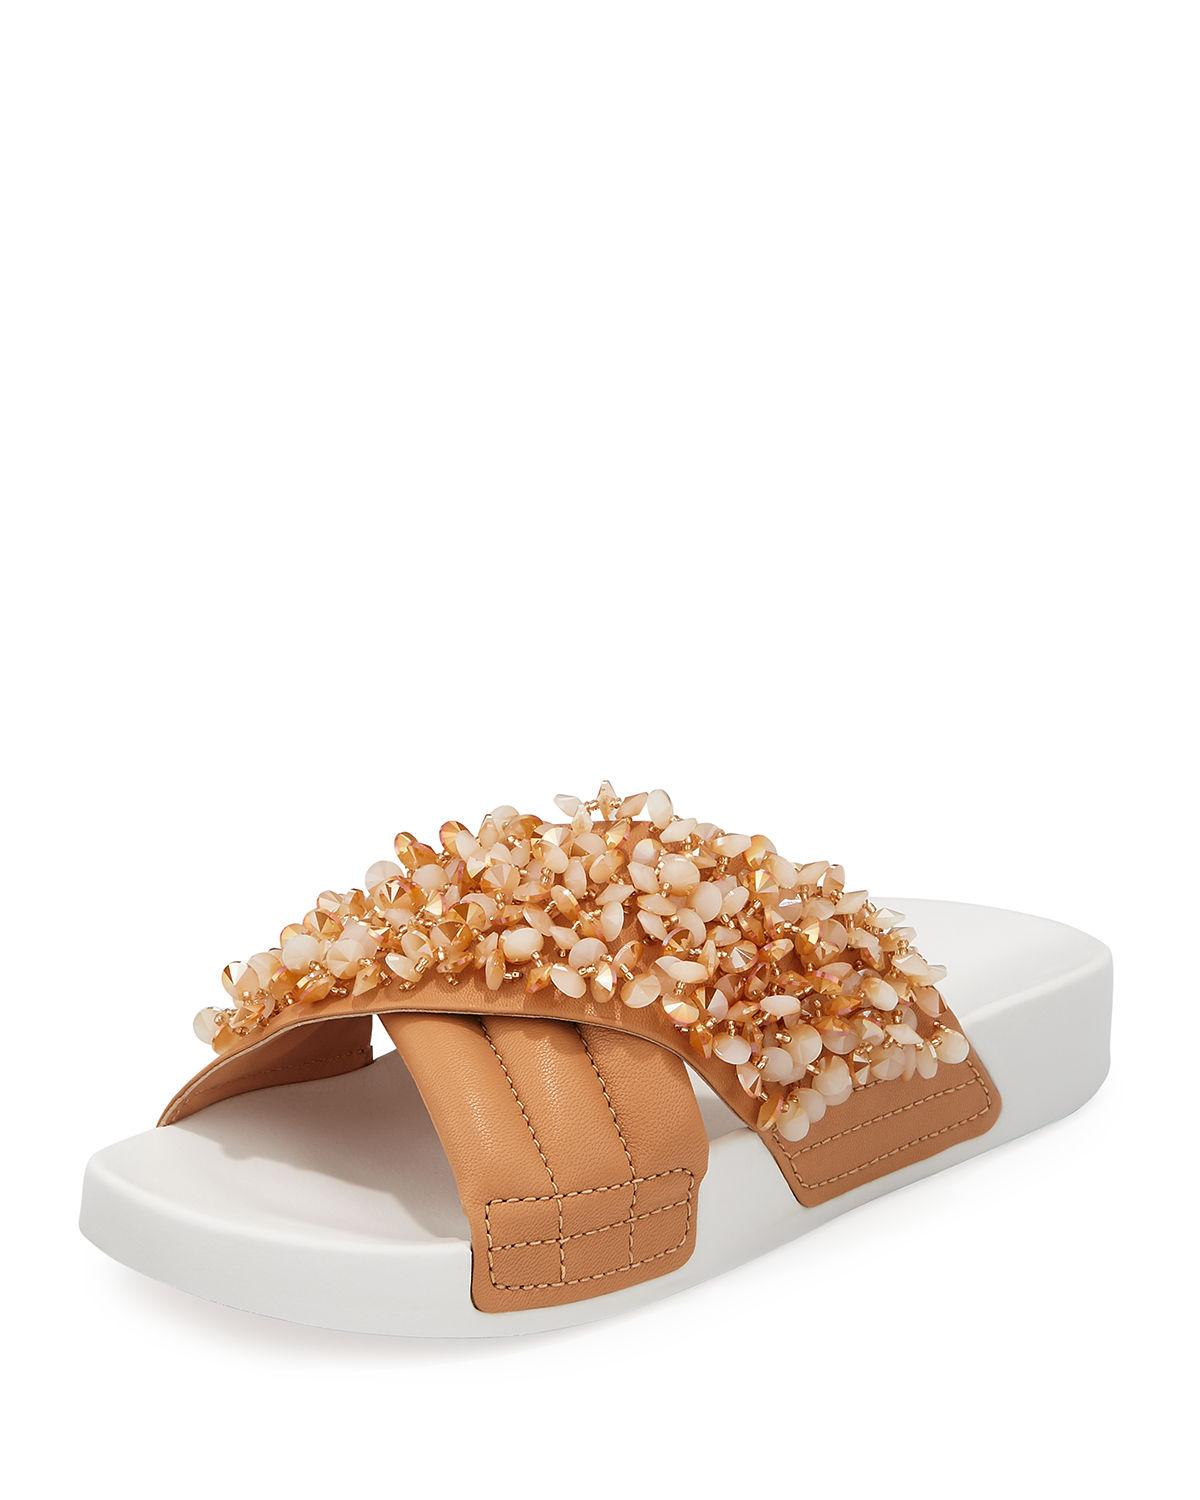 980080b4d67c Tory Burch Women s Logan Embellished   Quilted Leather Pool Slide Sandals  In Natural Vachetta  Cassia